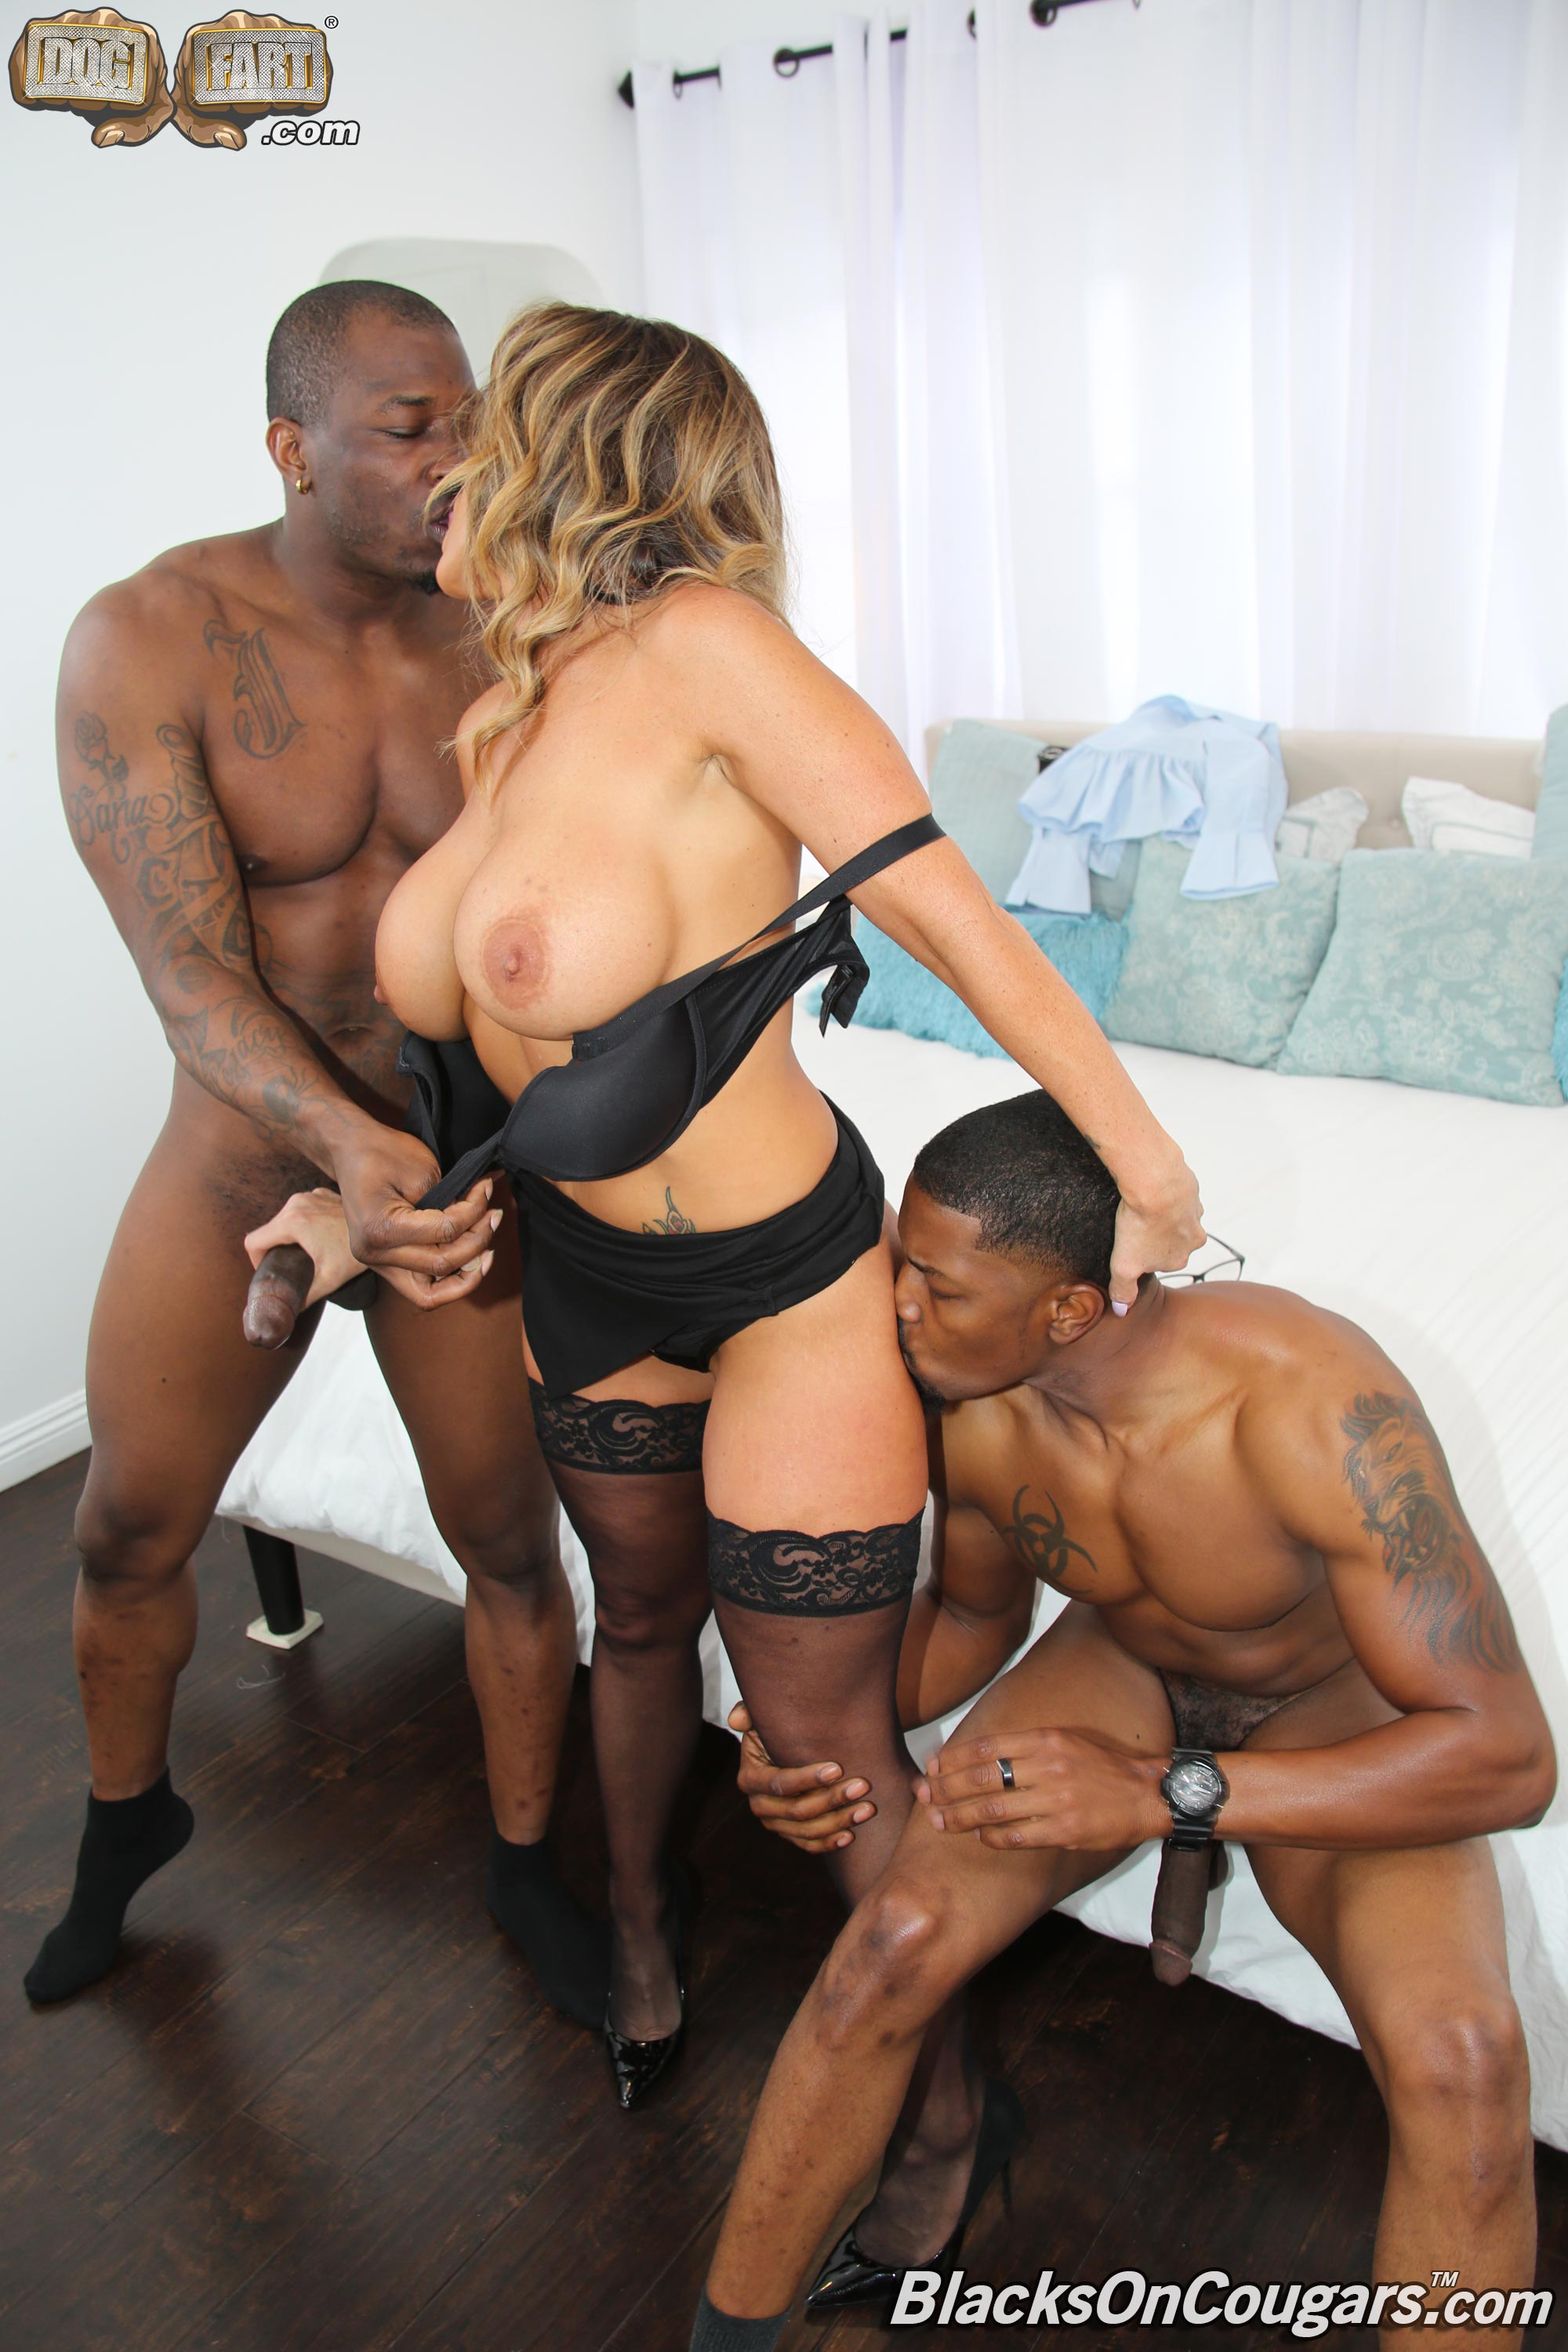 Access black includes interracial site